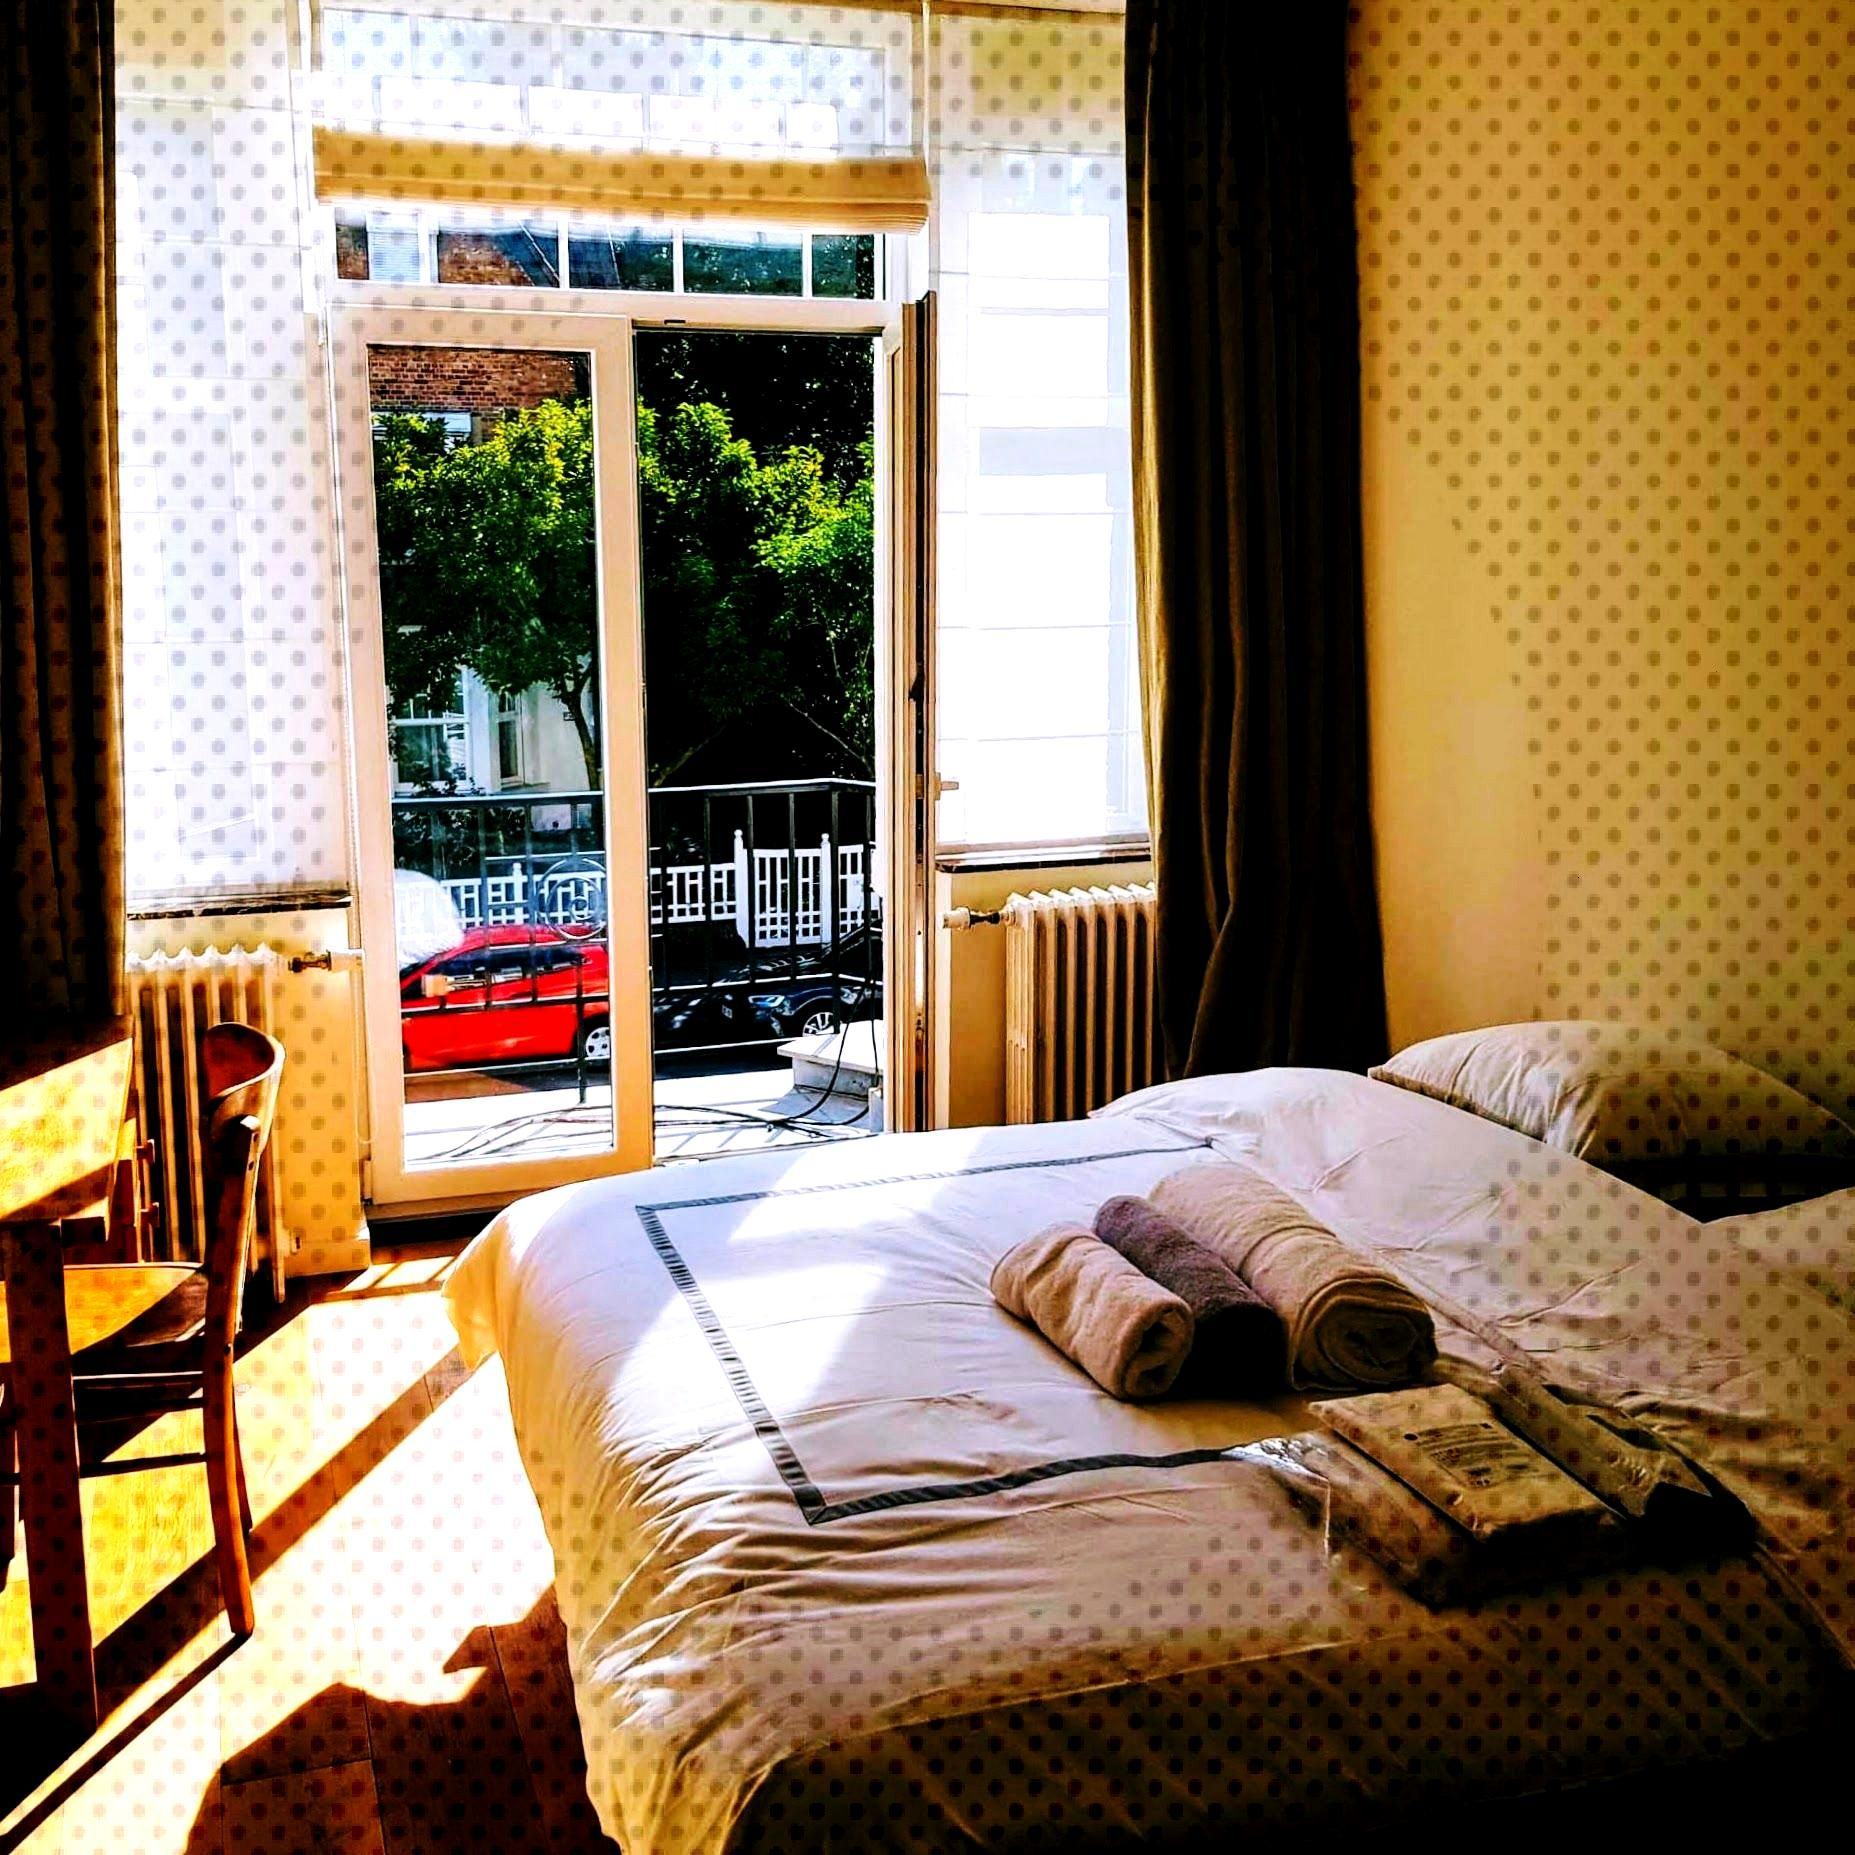 4 rooms colocation in big house just renovated (2019. Residential area in the North of Brussels.